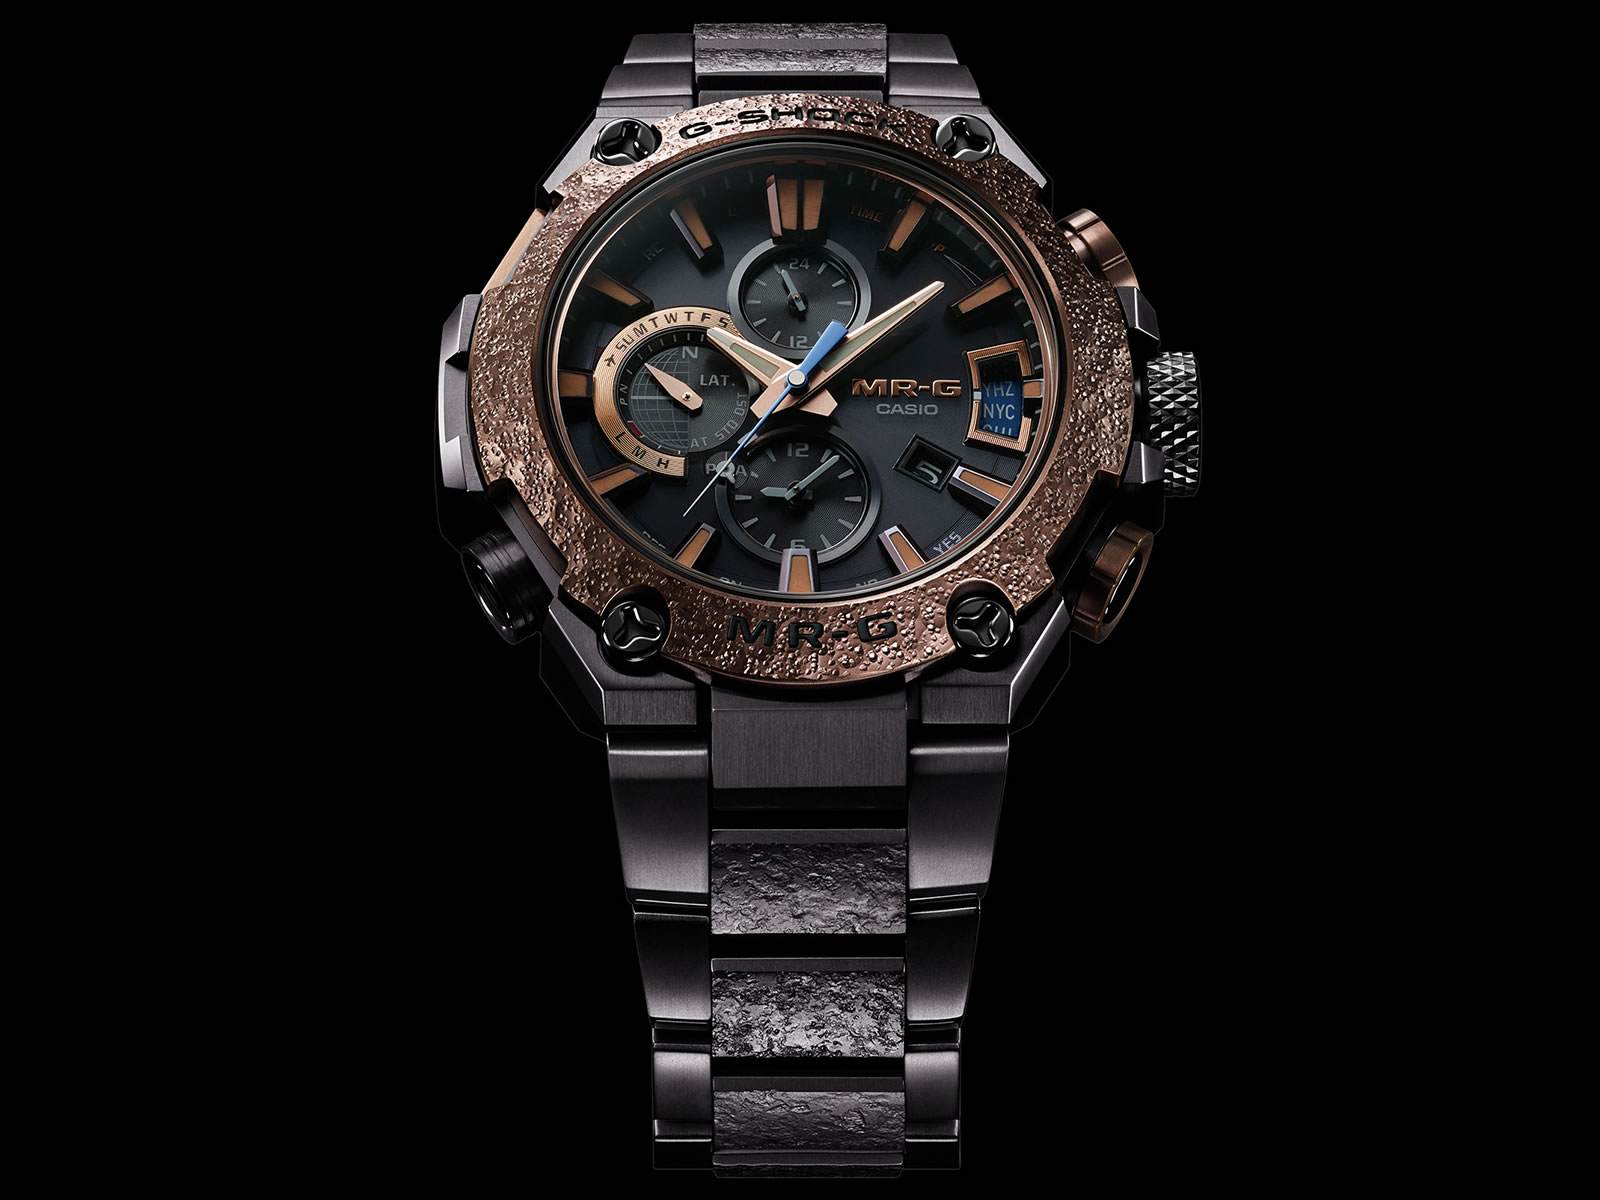 mrg-g2000ha-casio-g-shock-mr-g-hammer-tone-6-.jpg